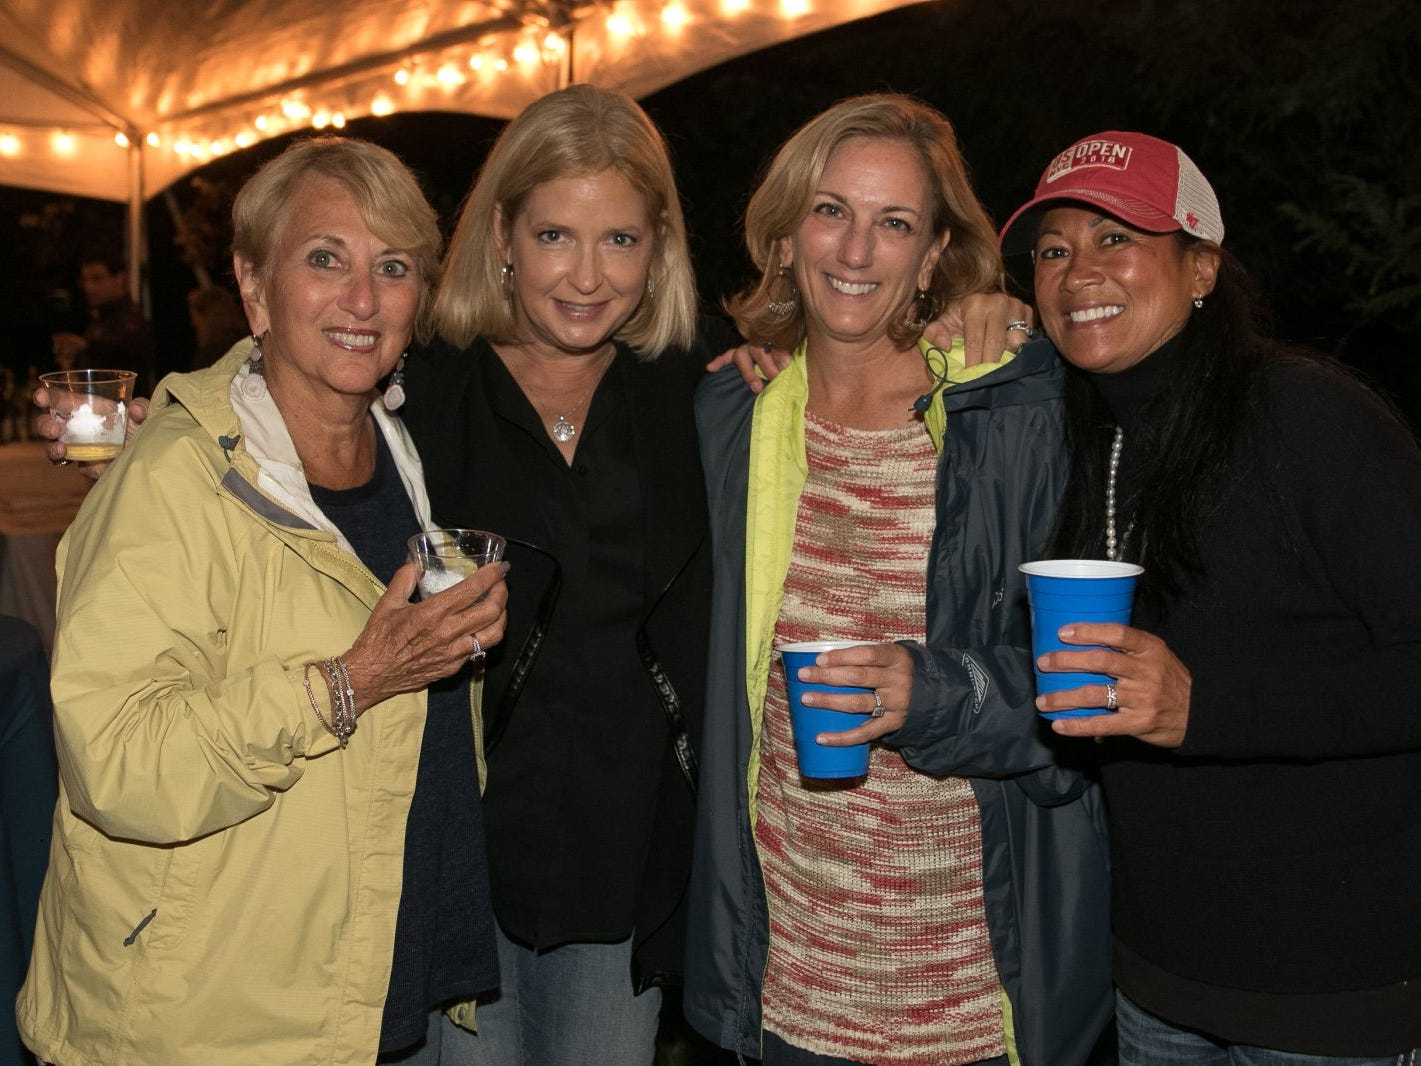 "Diane Gess, Robin Morsch, Nancy Scanlon, Cyndy Sagullo. Pam Chmiel, The Tres Amigos Paella Company (David Colin, Joe Scanlon and Jeff Saladucha), The Jims (Jim Gibney and Jim Toscano), George Nikias, Ron Oscher and Neil Murphy held Ridgewood Cooks for a Cause to benefit ""Cookies For Kids Cancer"" (Childhood Cancer Research) and YCS (Youth Consultaion Services) charities. 09/08/2018"